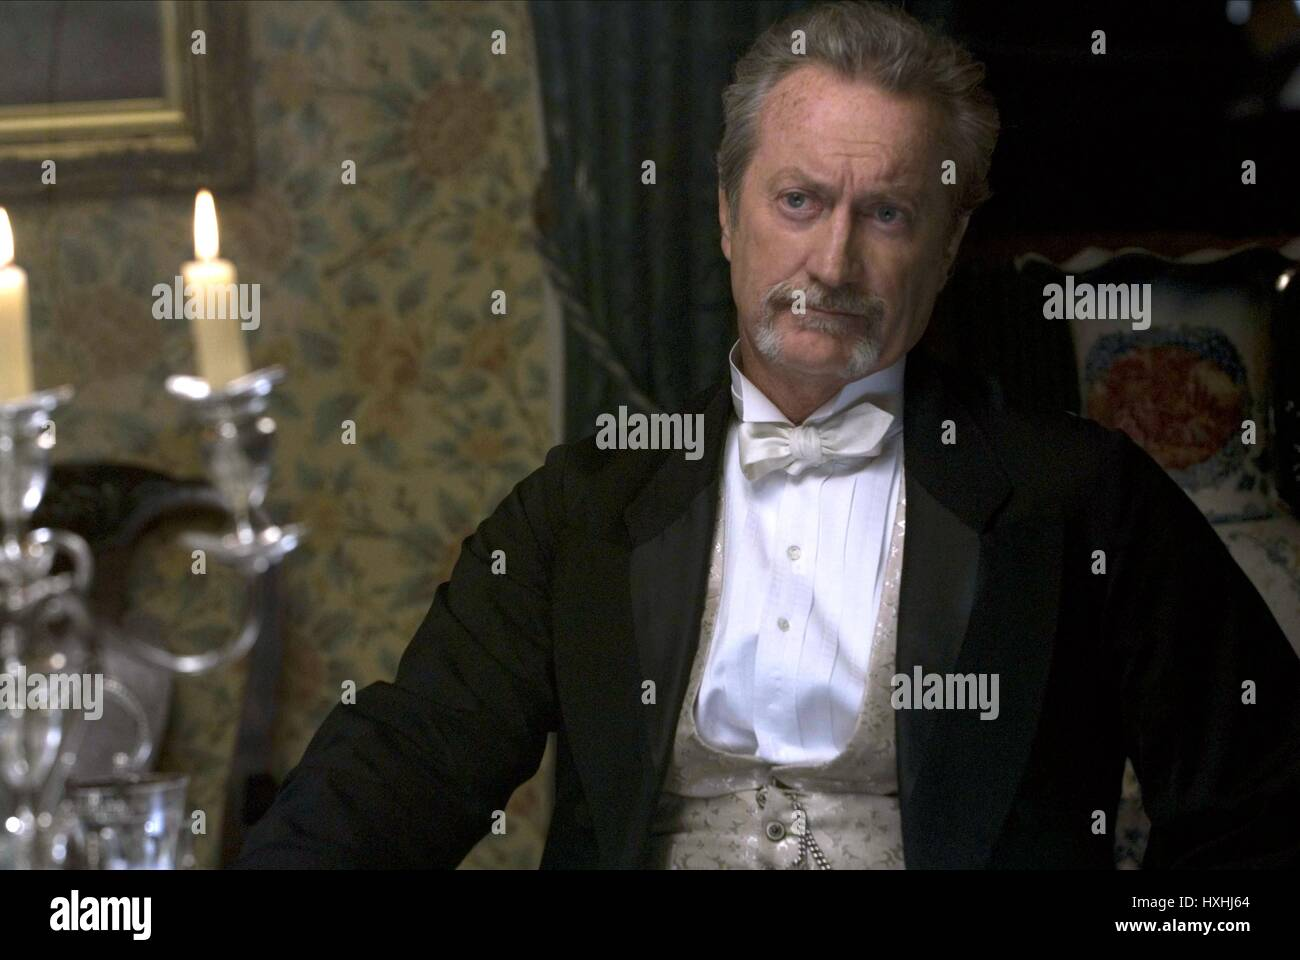 BRYAN BROWN MY TALKS WITH DEAN SPANLEY (2008) - Stock Image